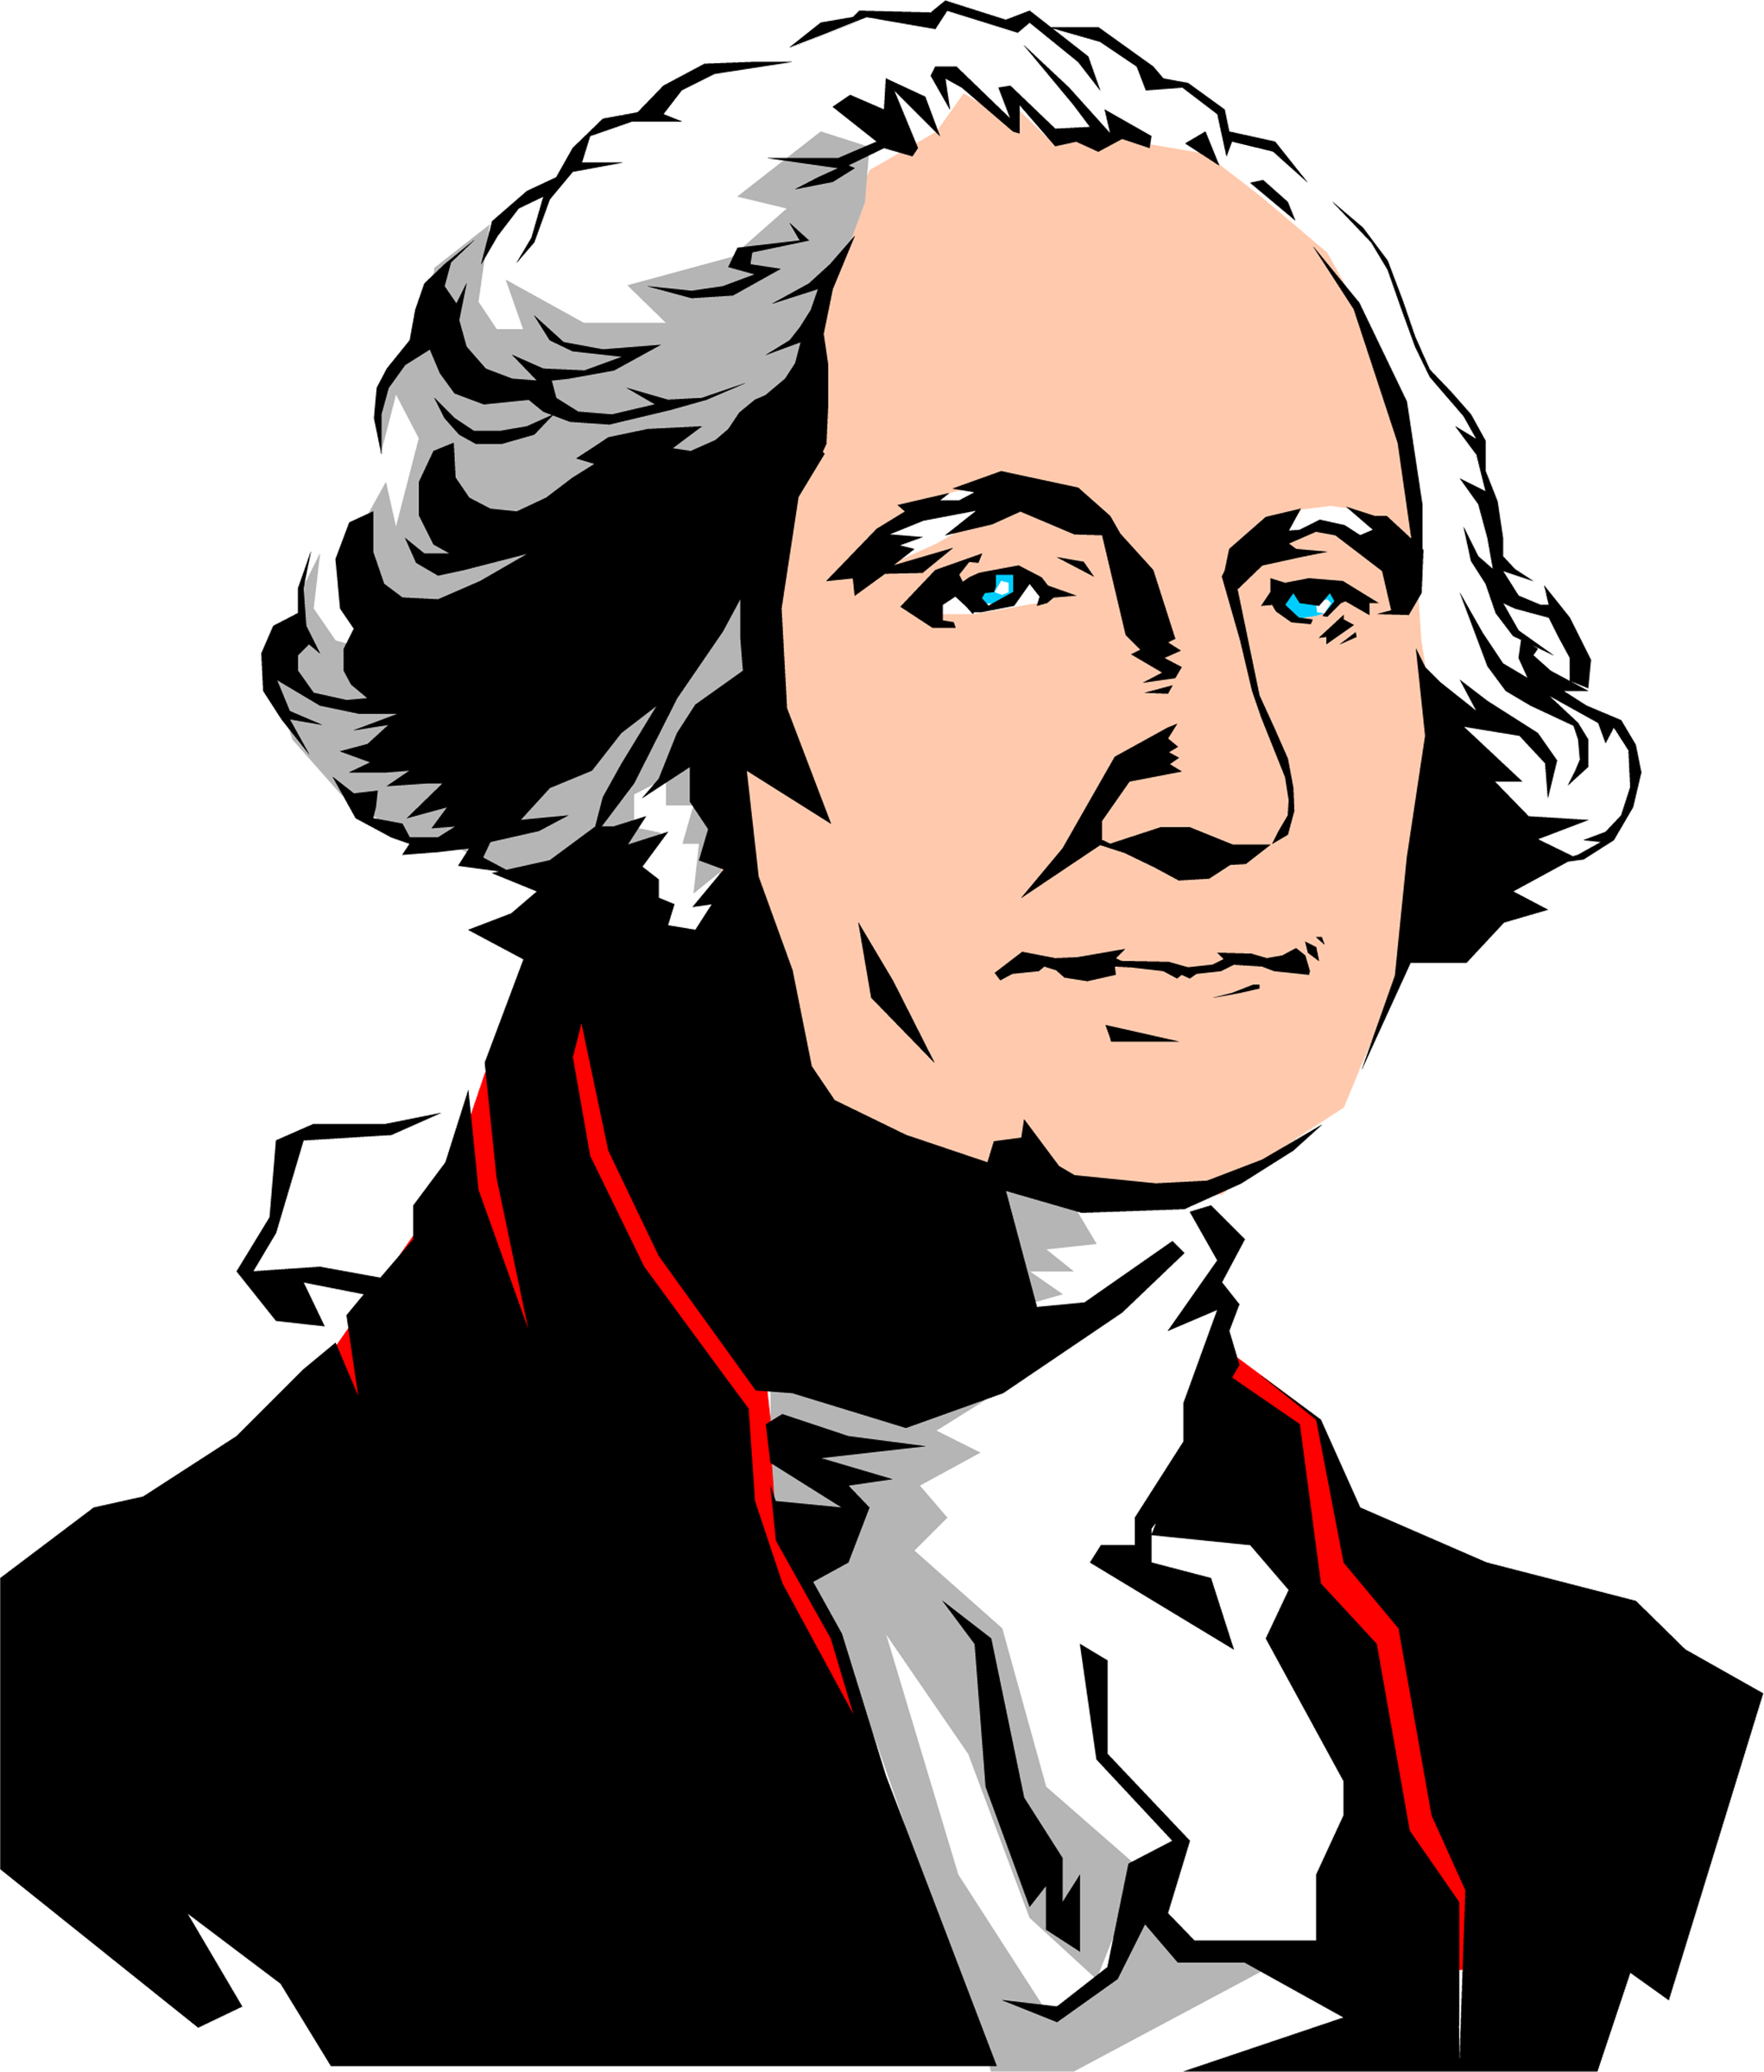 graphic free library Cartoon drawing at getdrawings. George washington clipart.